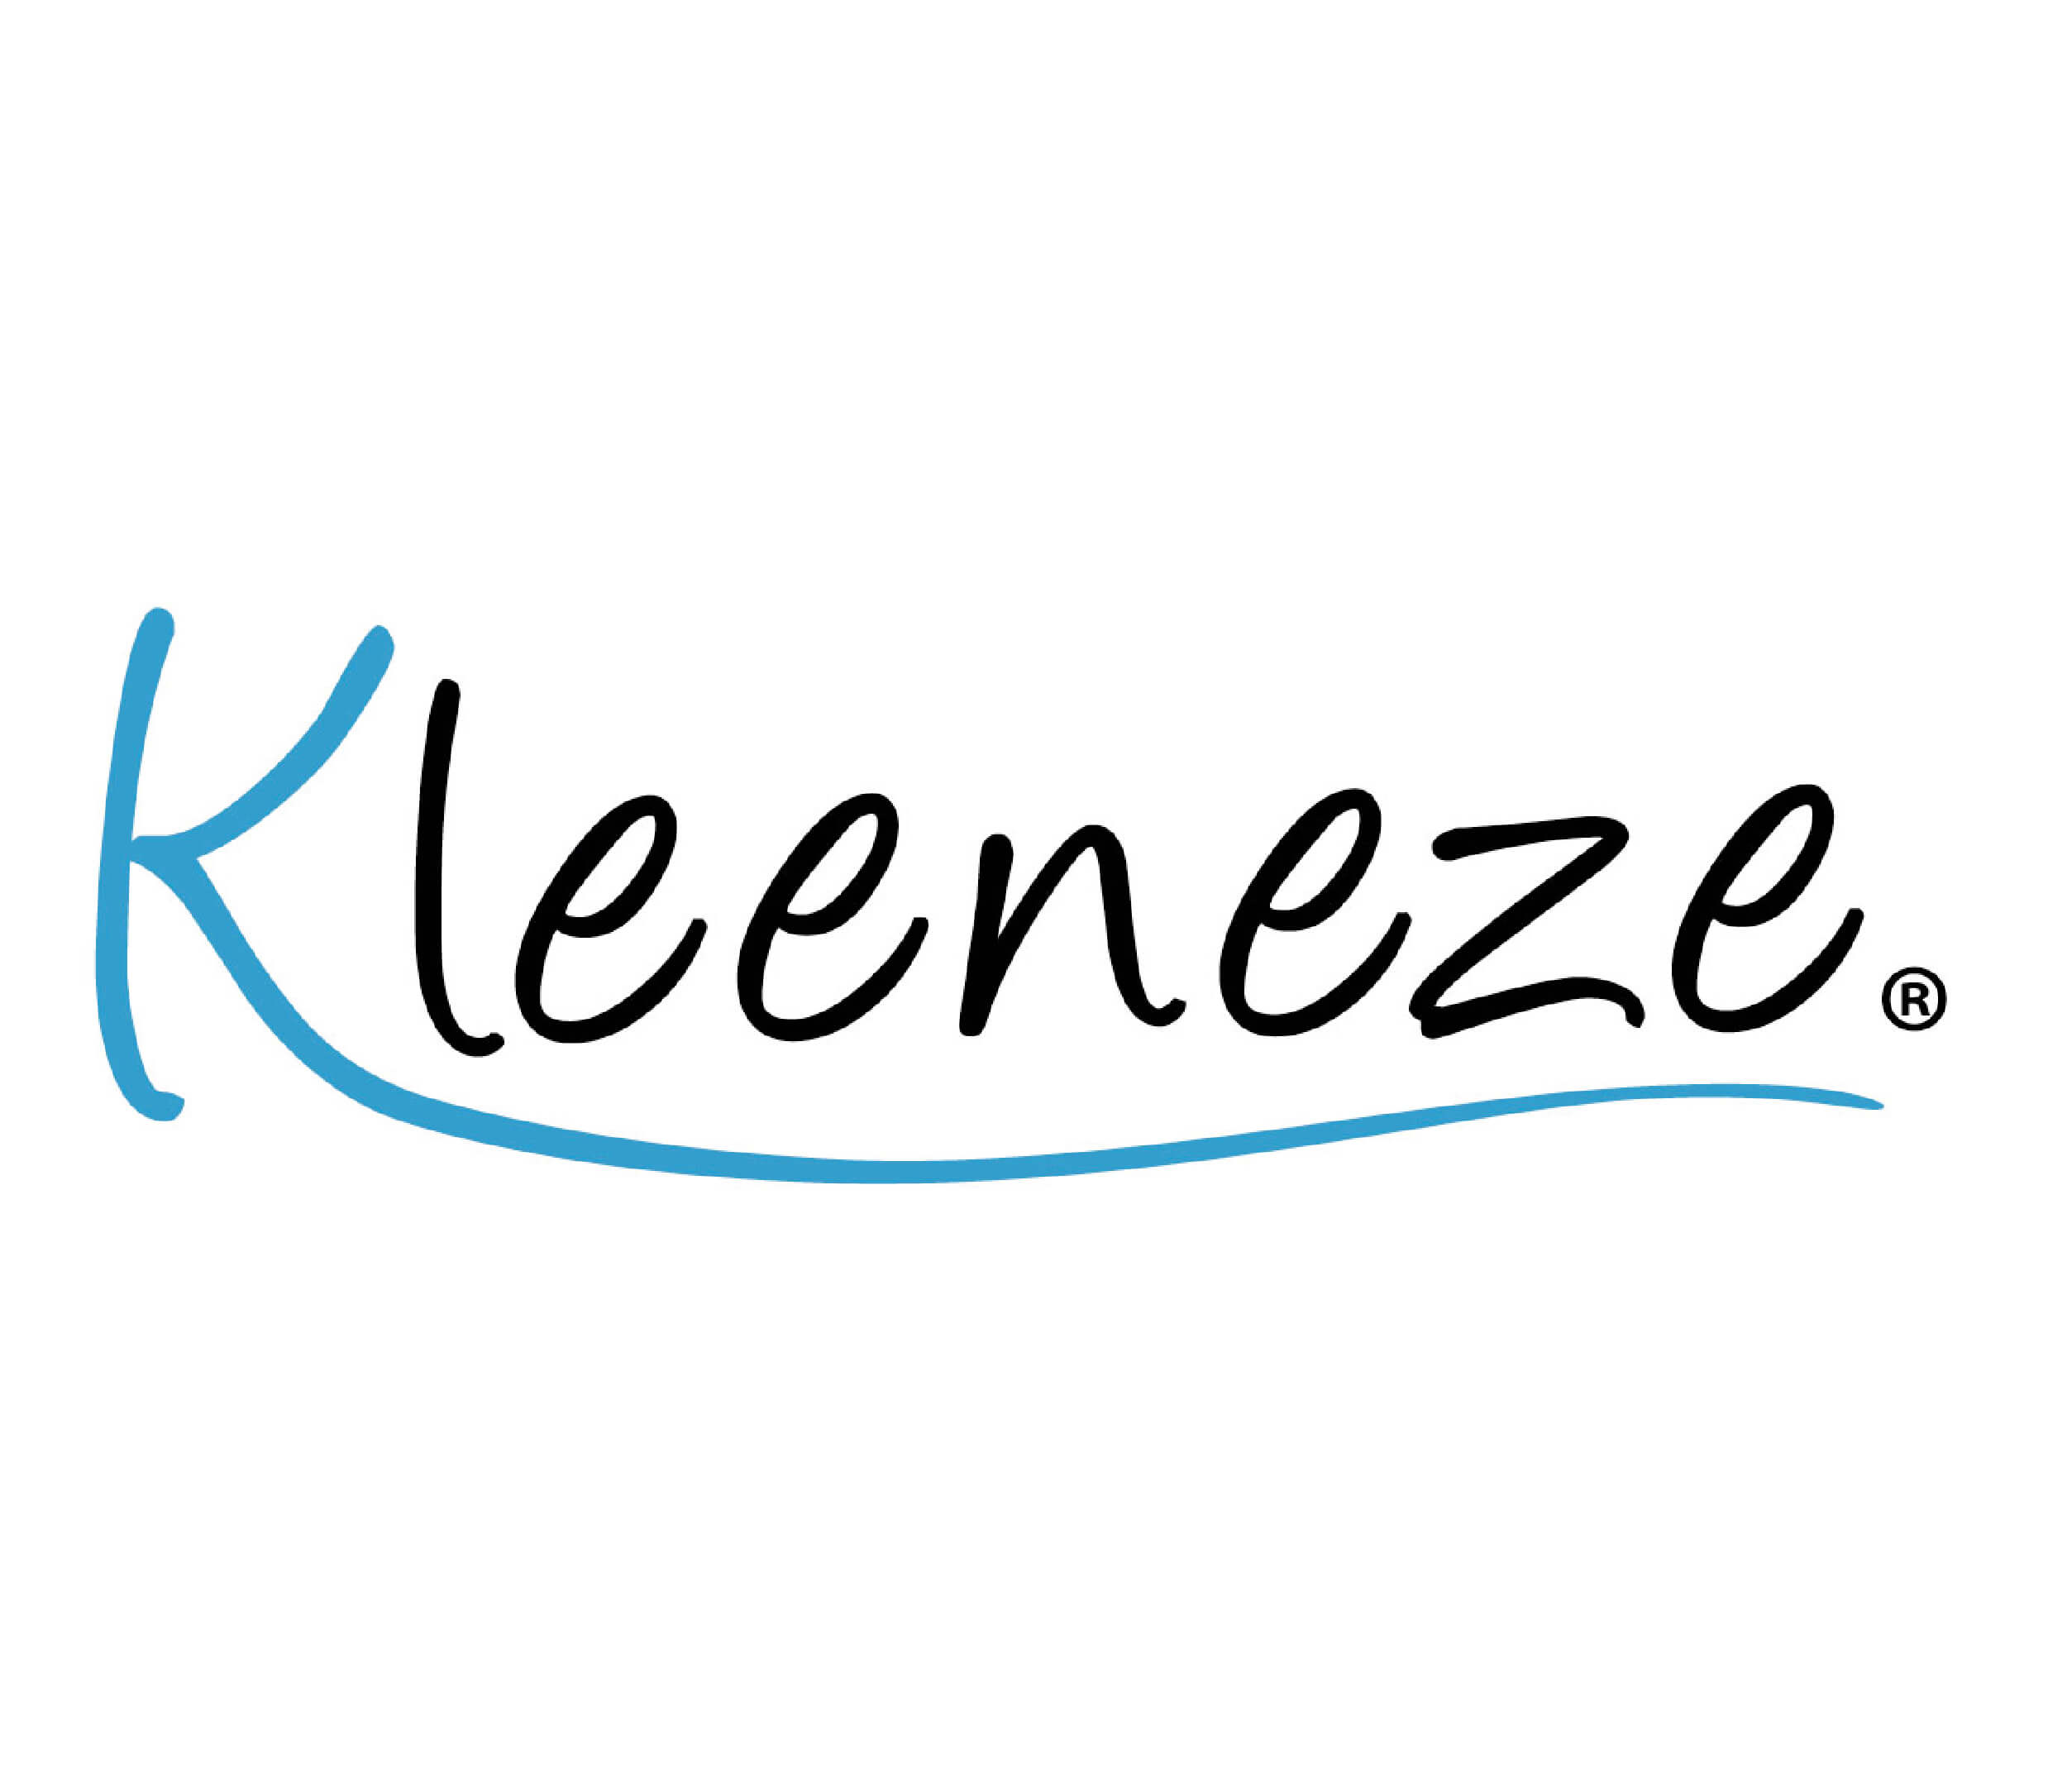 Purchase of Kleeneze Brand